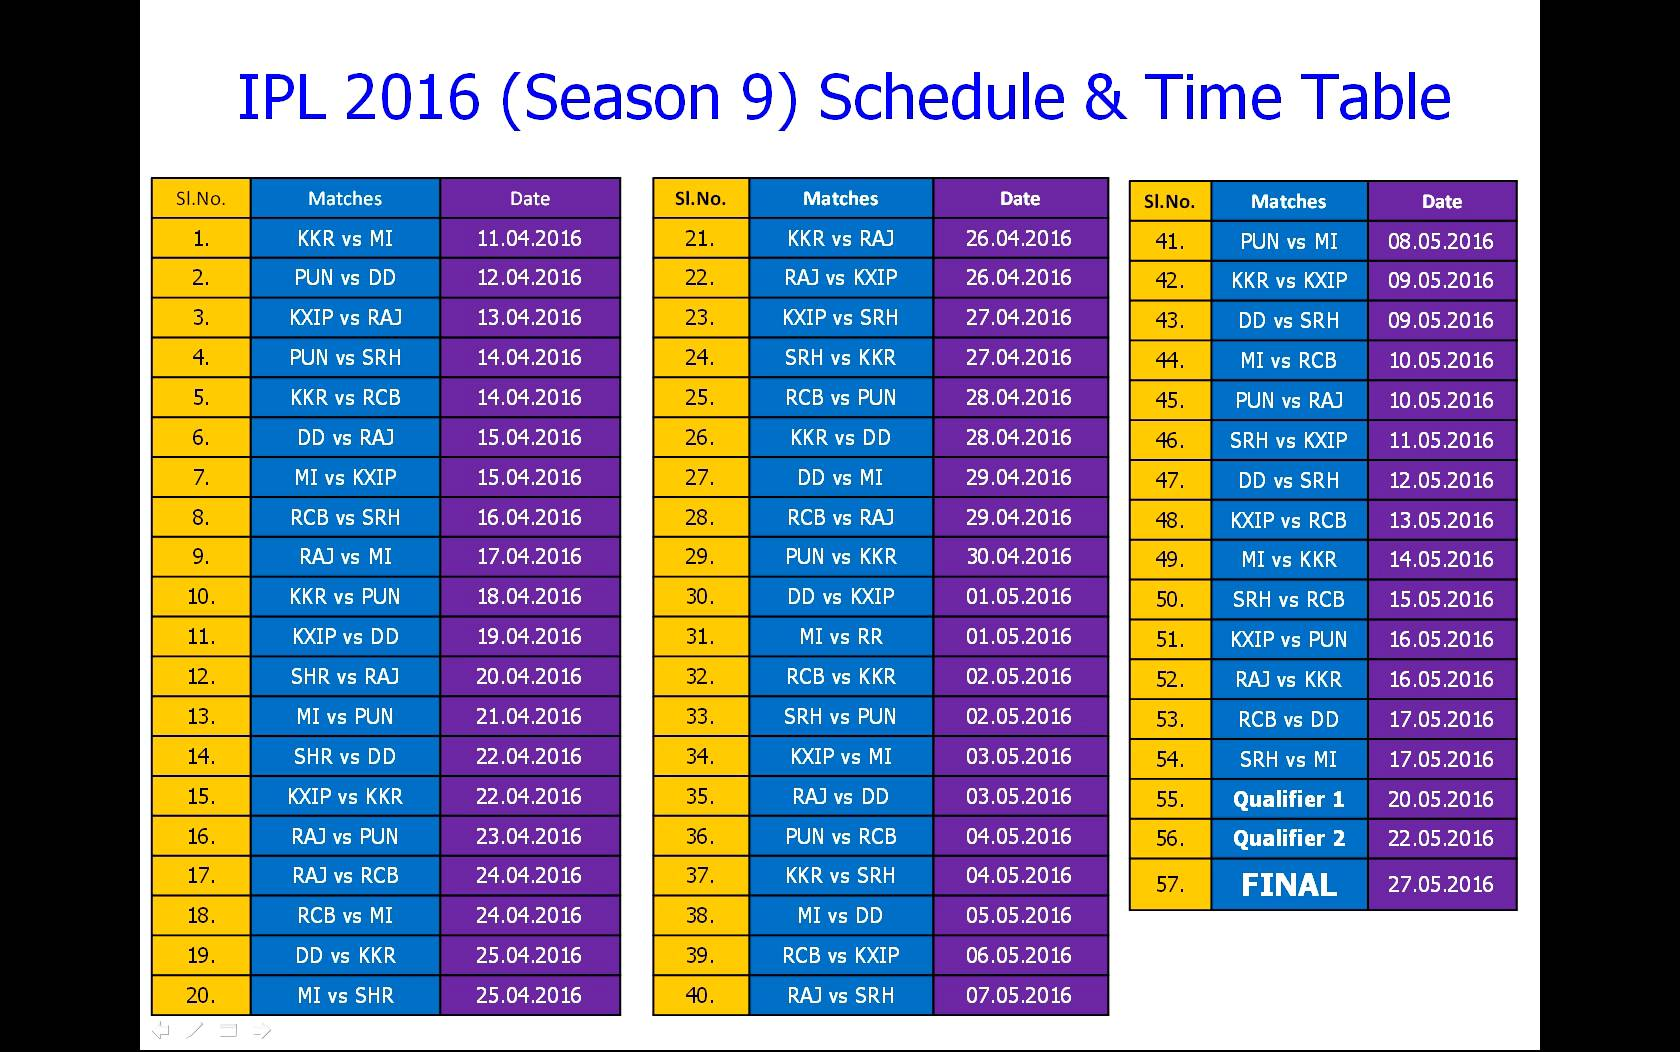 IPL 2016 Time table and schedule (season-9)